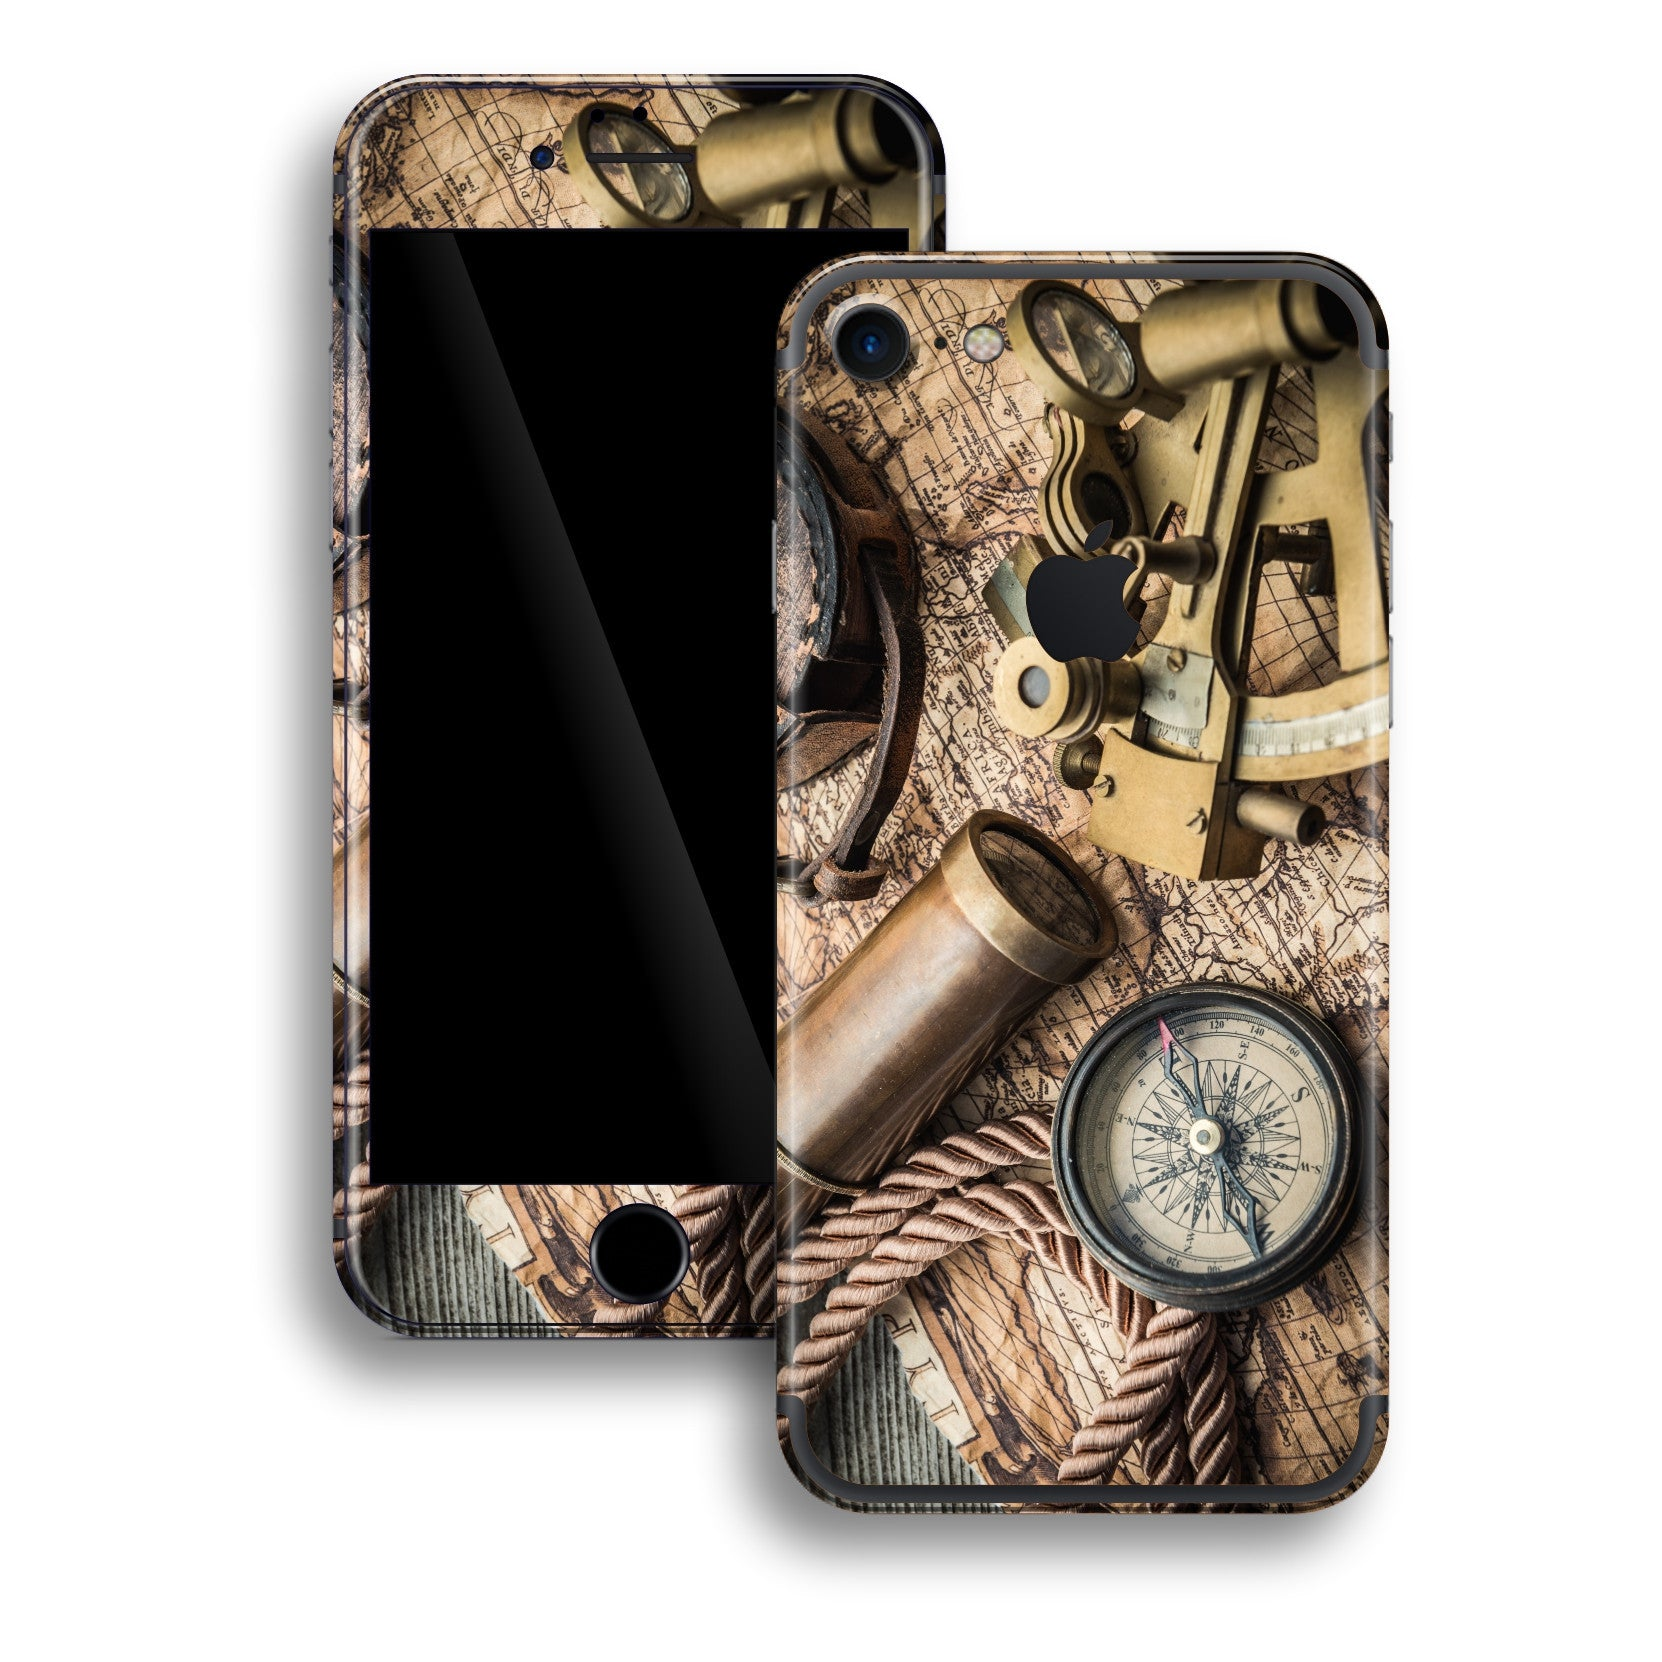 iPhone 7 Print Custom Signature Traveler Skin Wrap Decal by EasySkinz